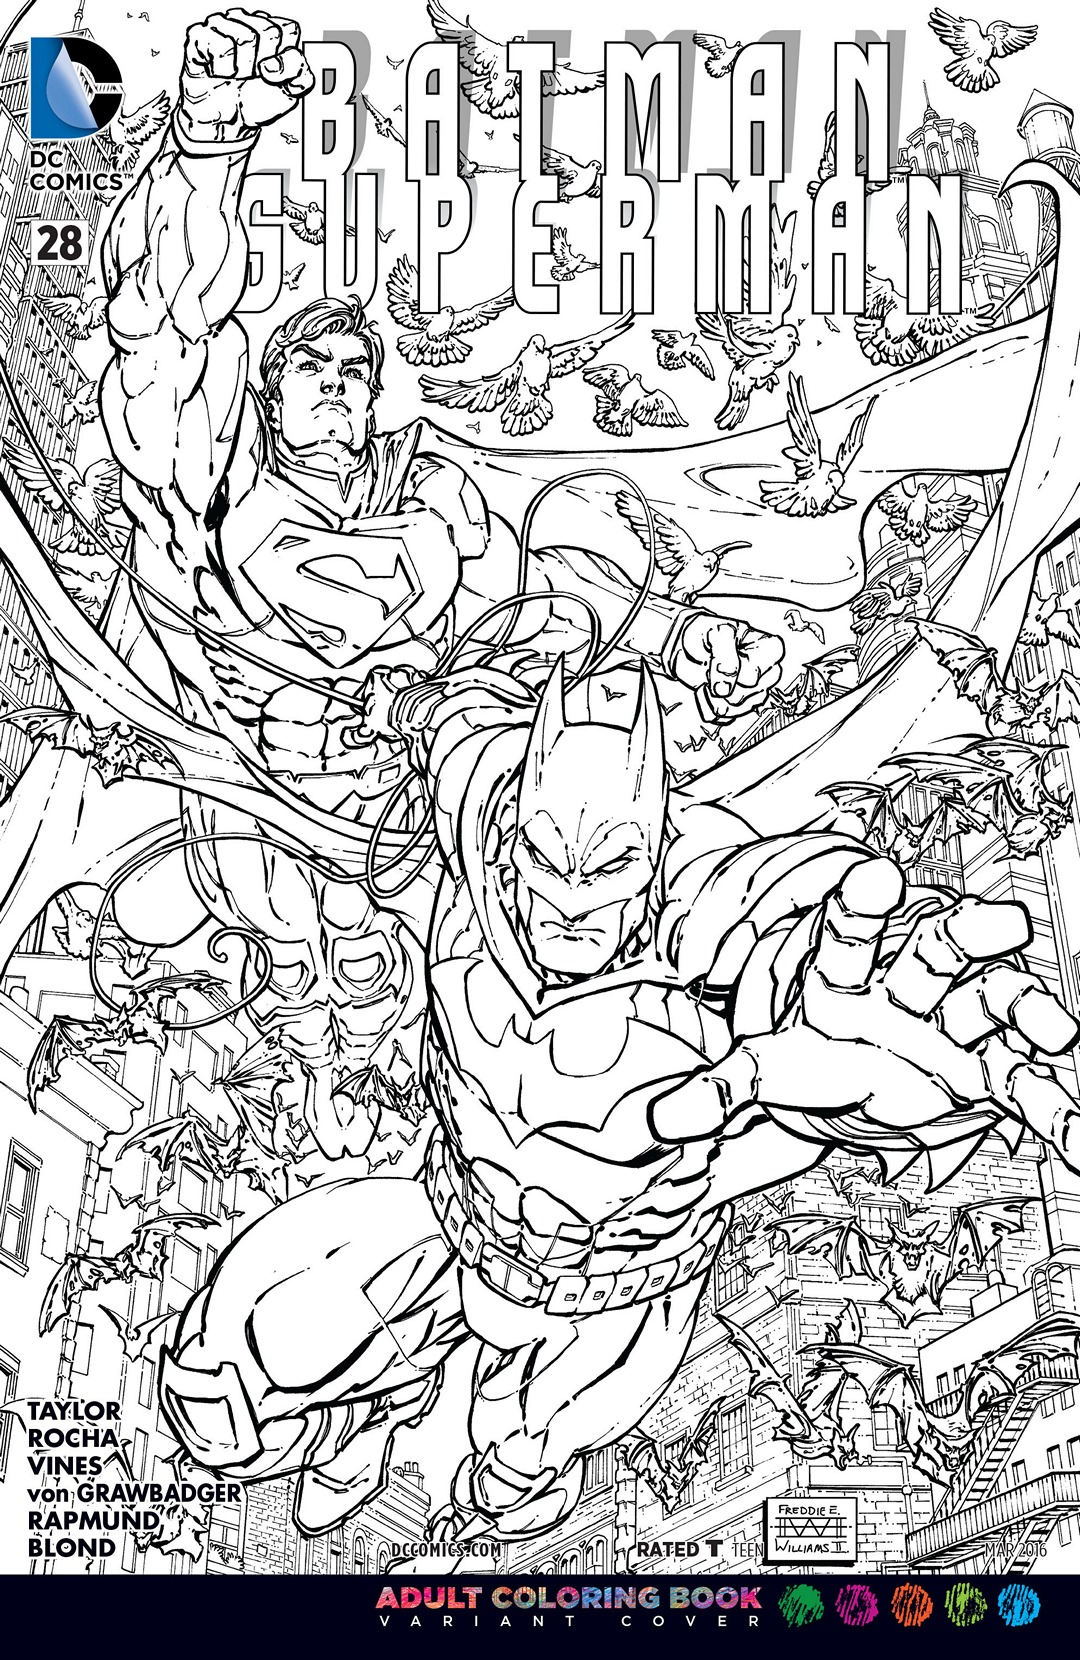 Batman Superman Vol 1 28 Adult Coloring Book Variant